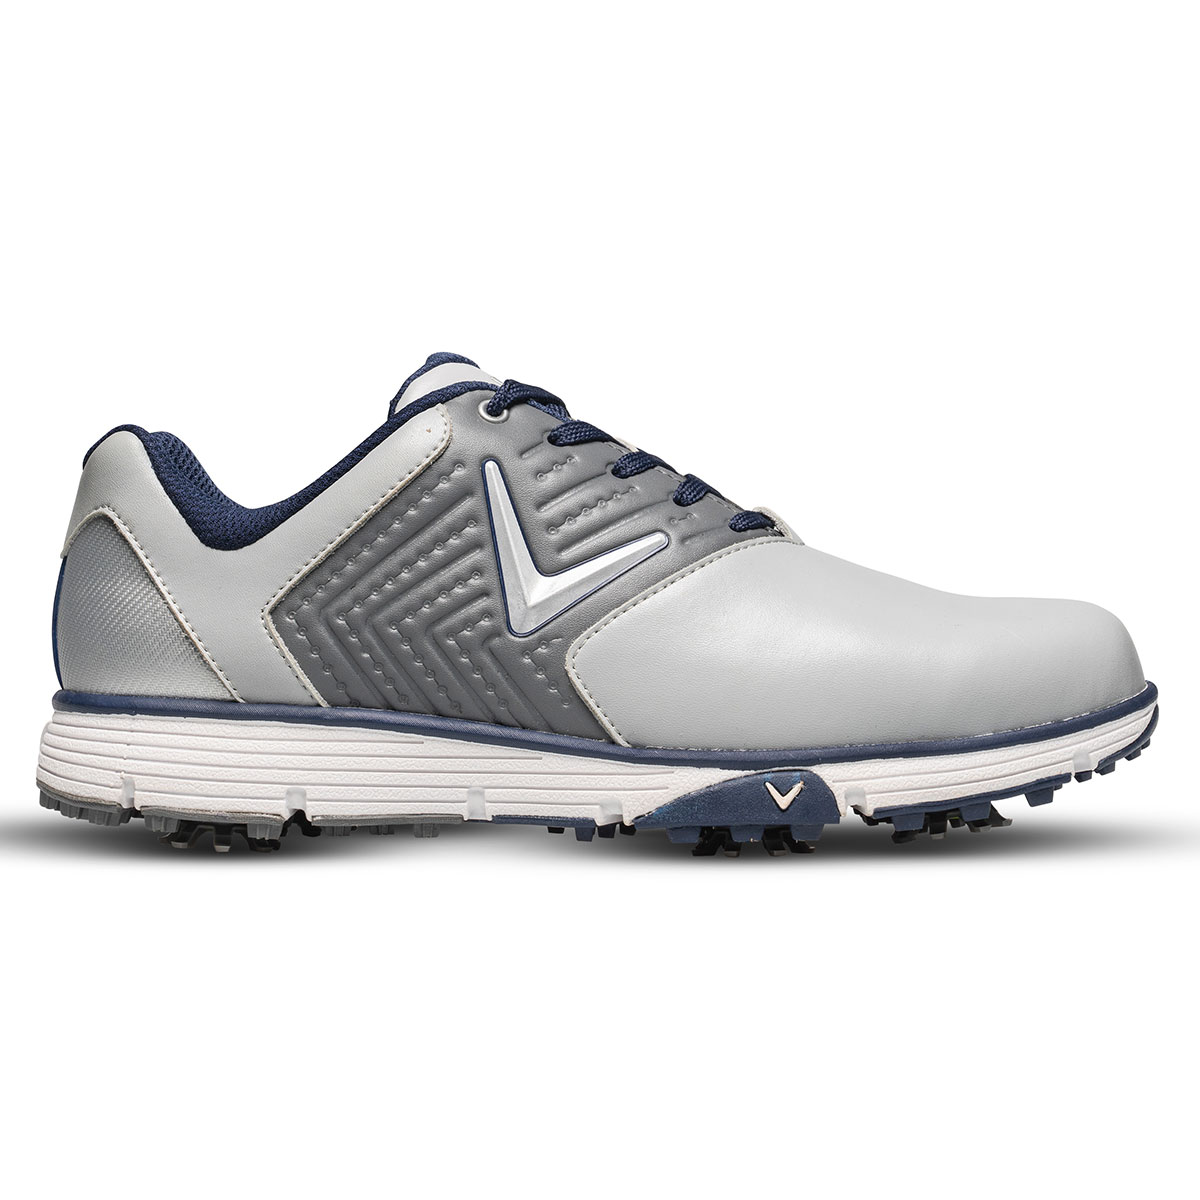 Callaway-Golf-Mens-2019-Chev-Mulligan-Waterproof-Leather-Golf-Shoes-29-OFF-RRP thumbnail 9